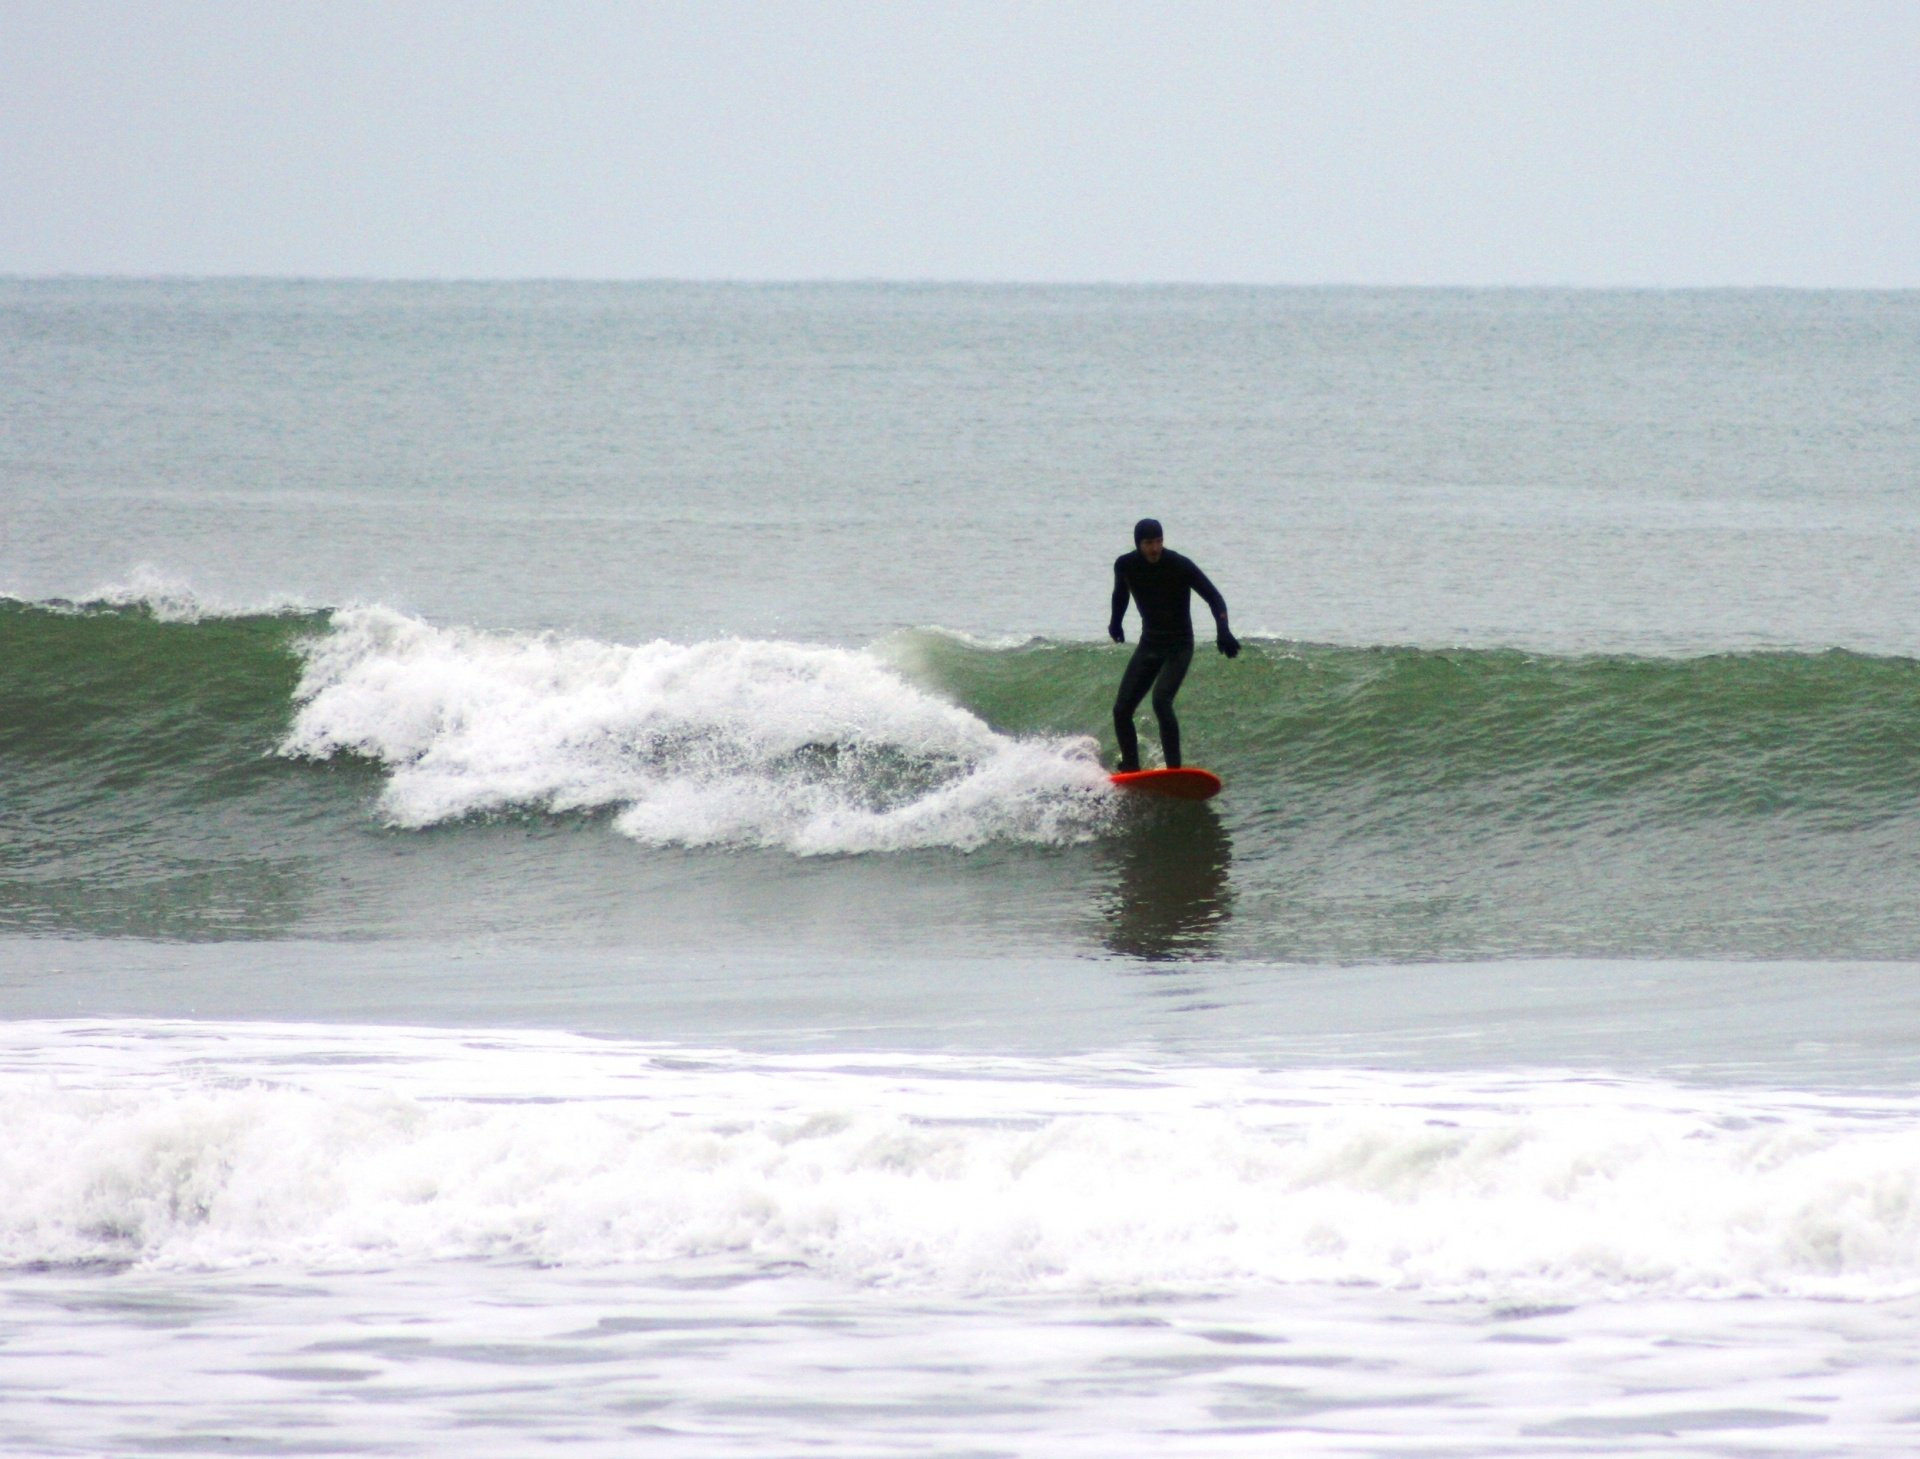 sean@northshorebude.com's photo of Bude - Crooklets